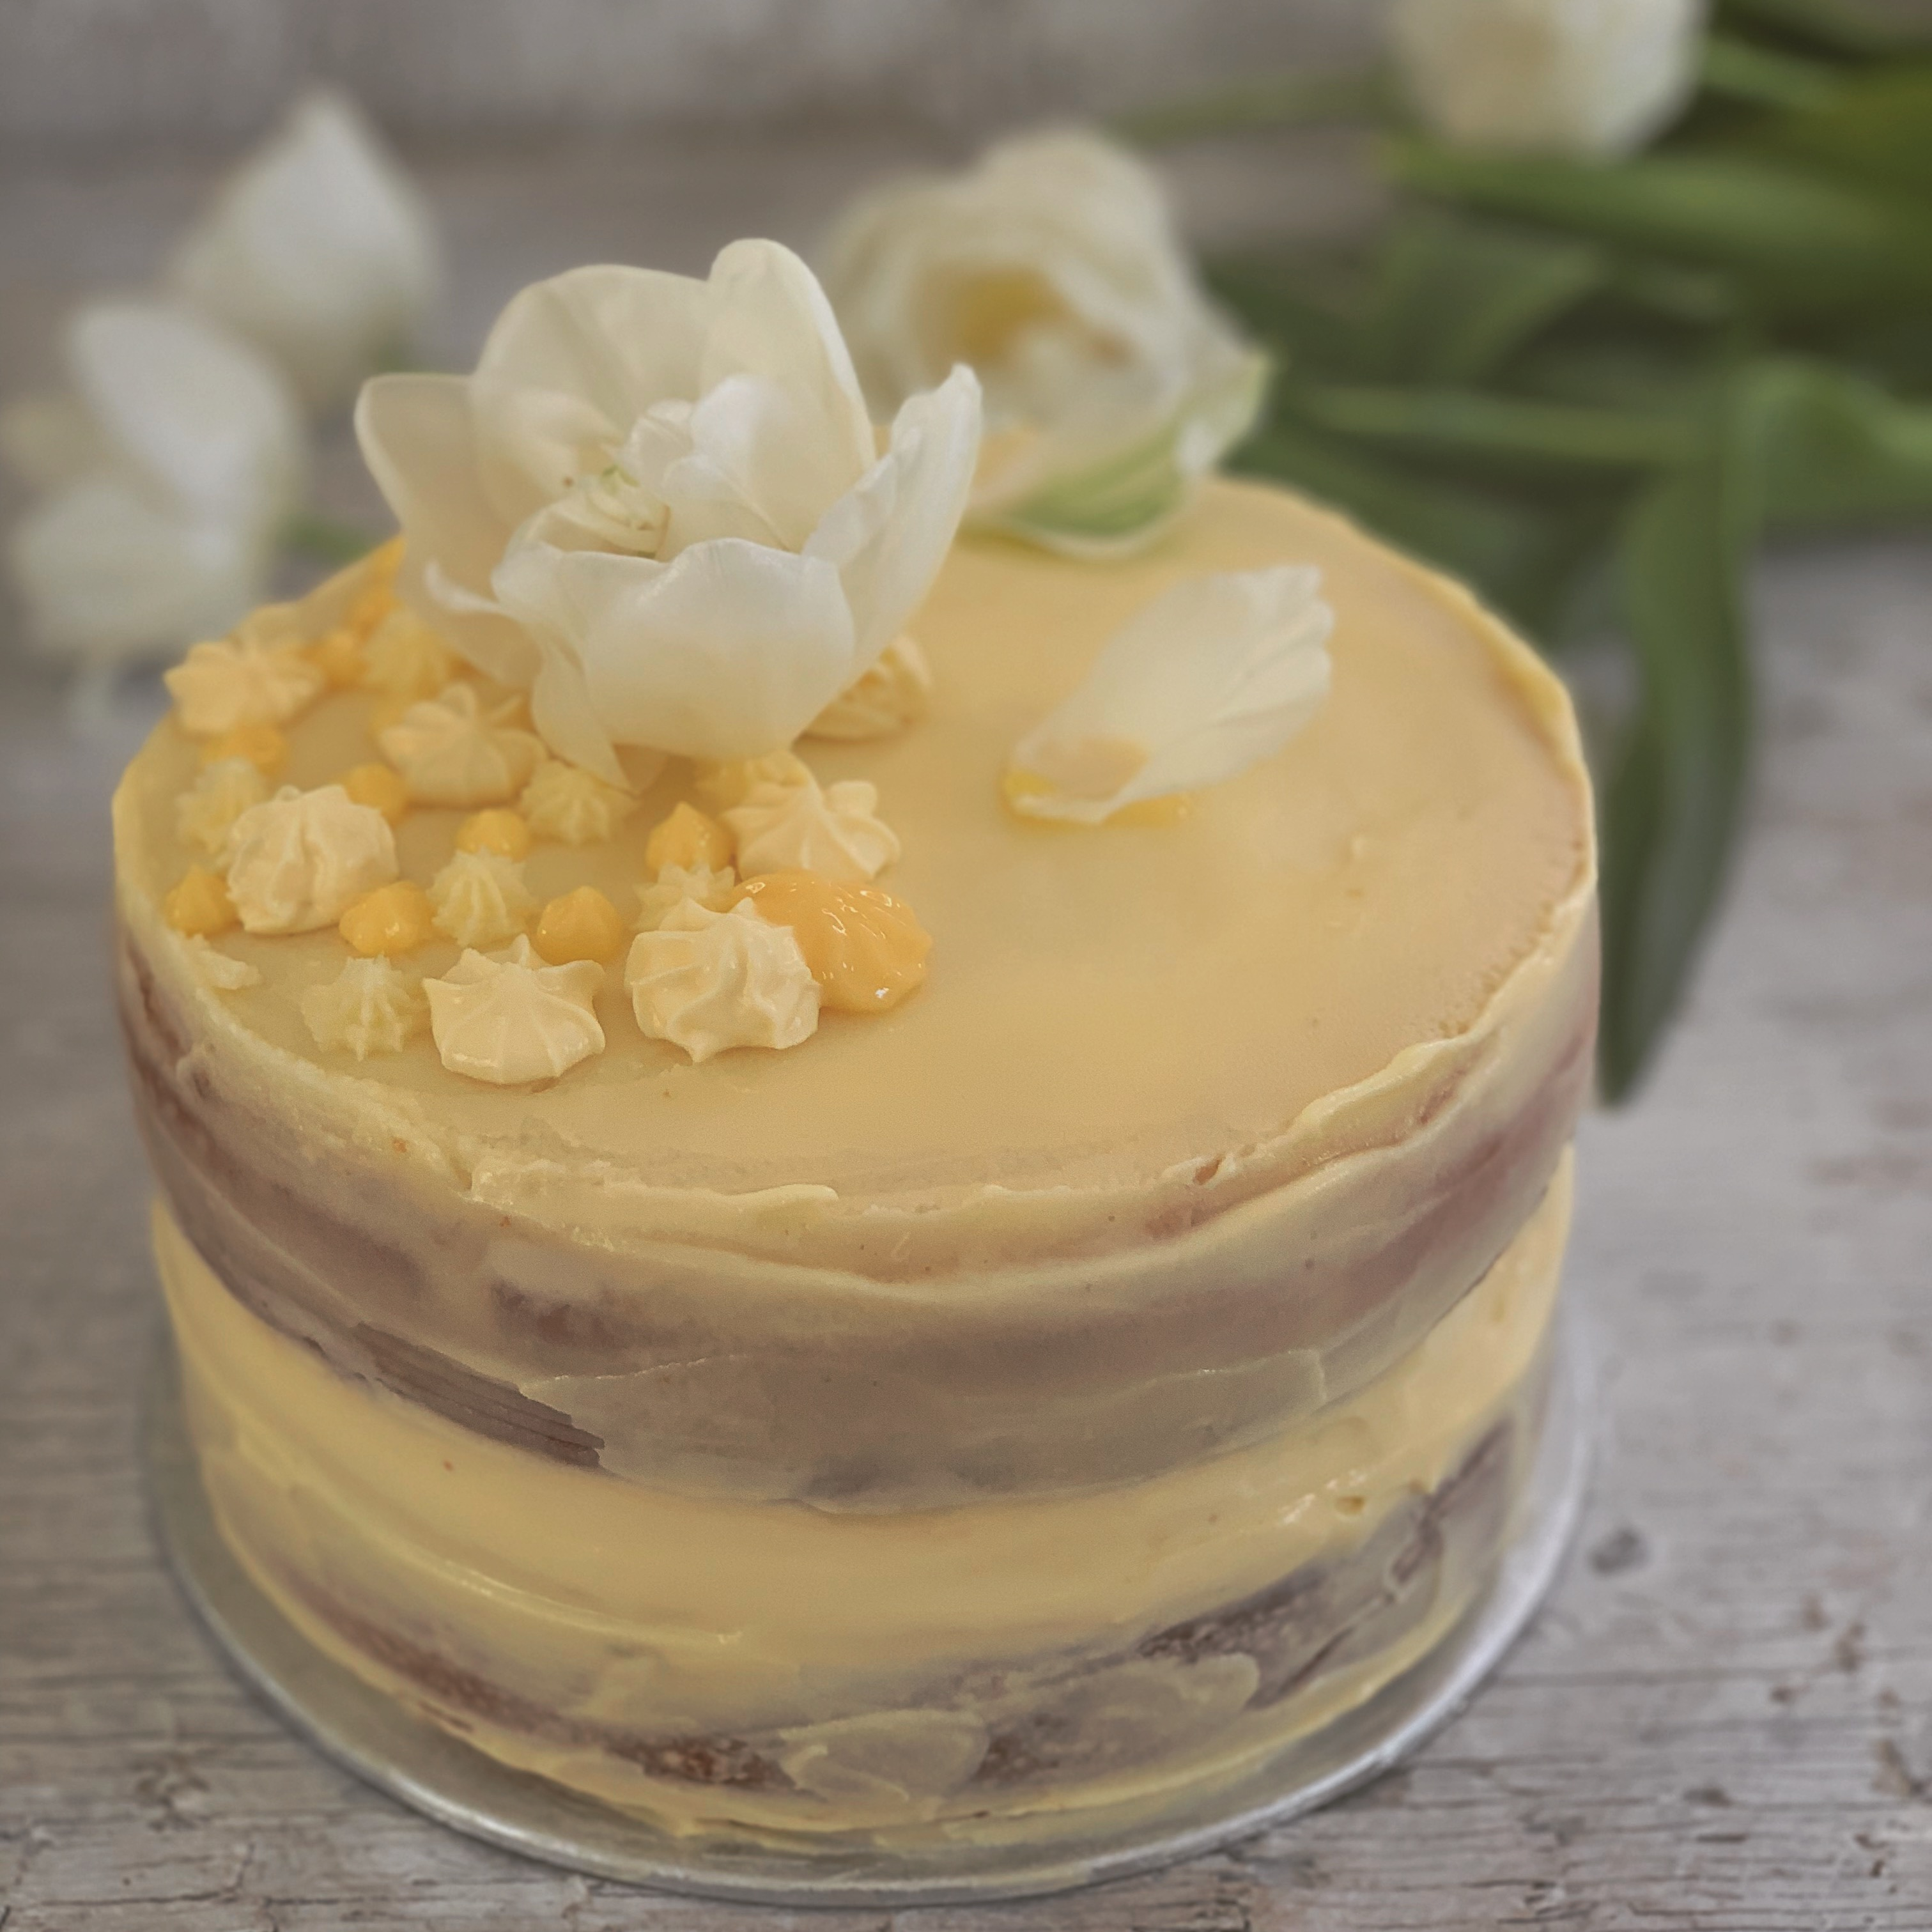 Lemon Curd Layer cake for an engagement party